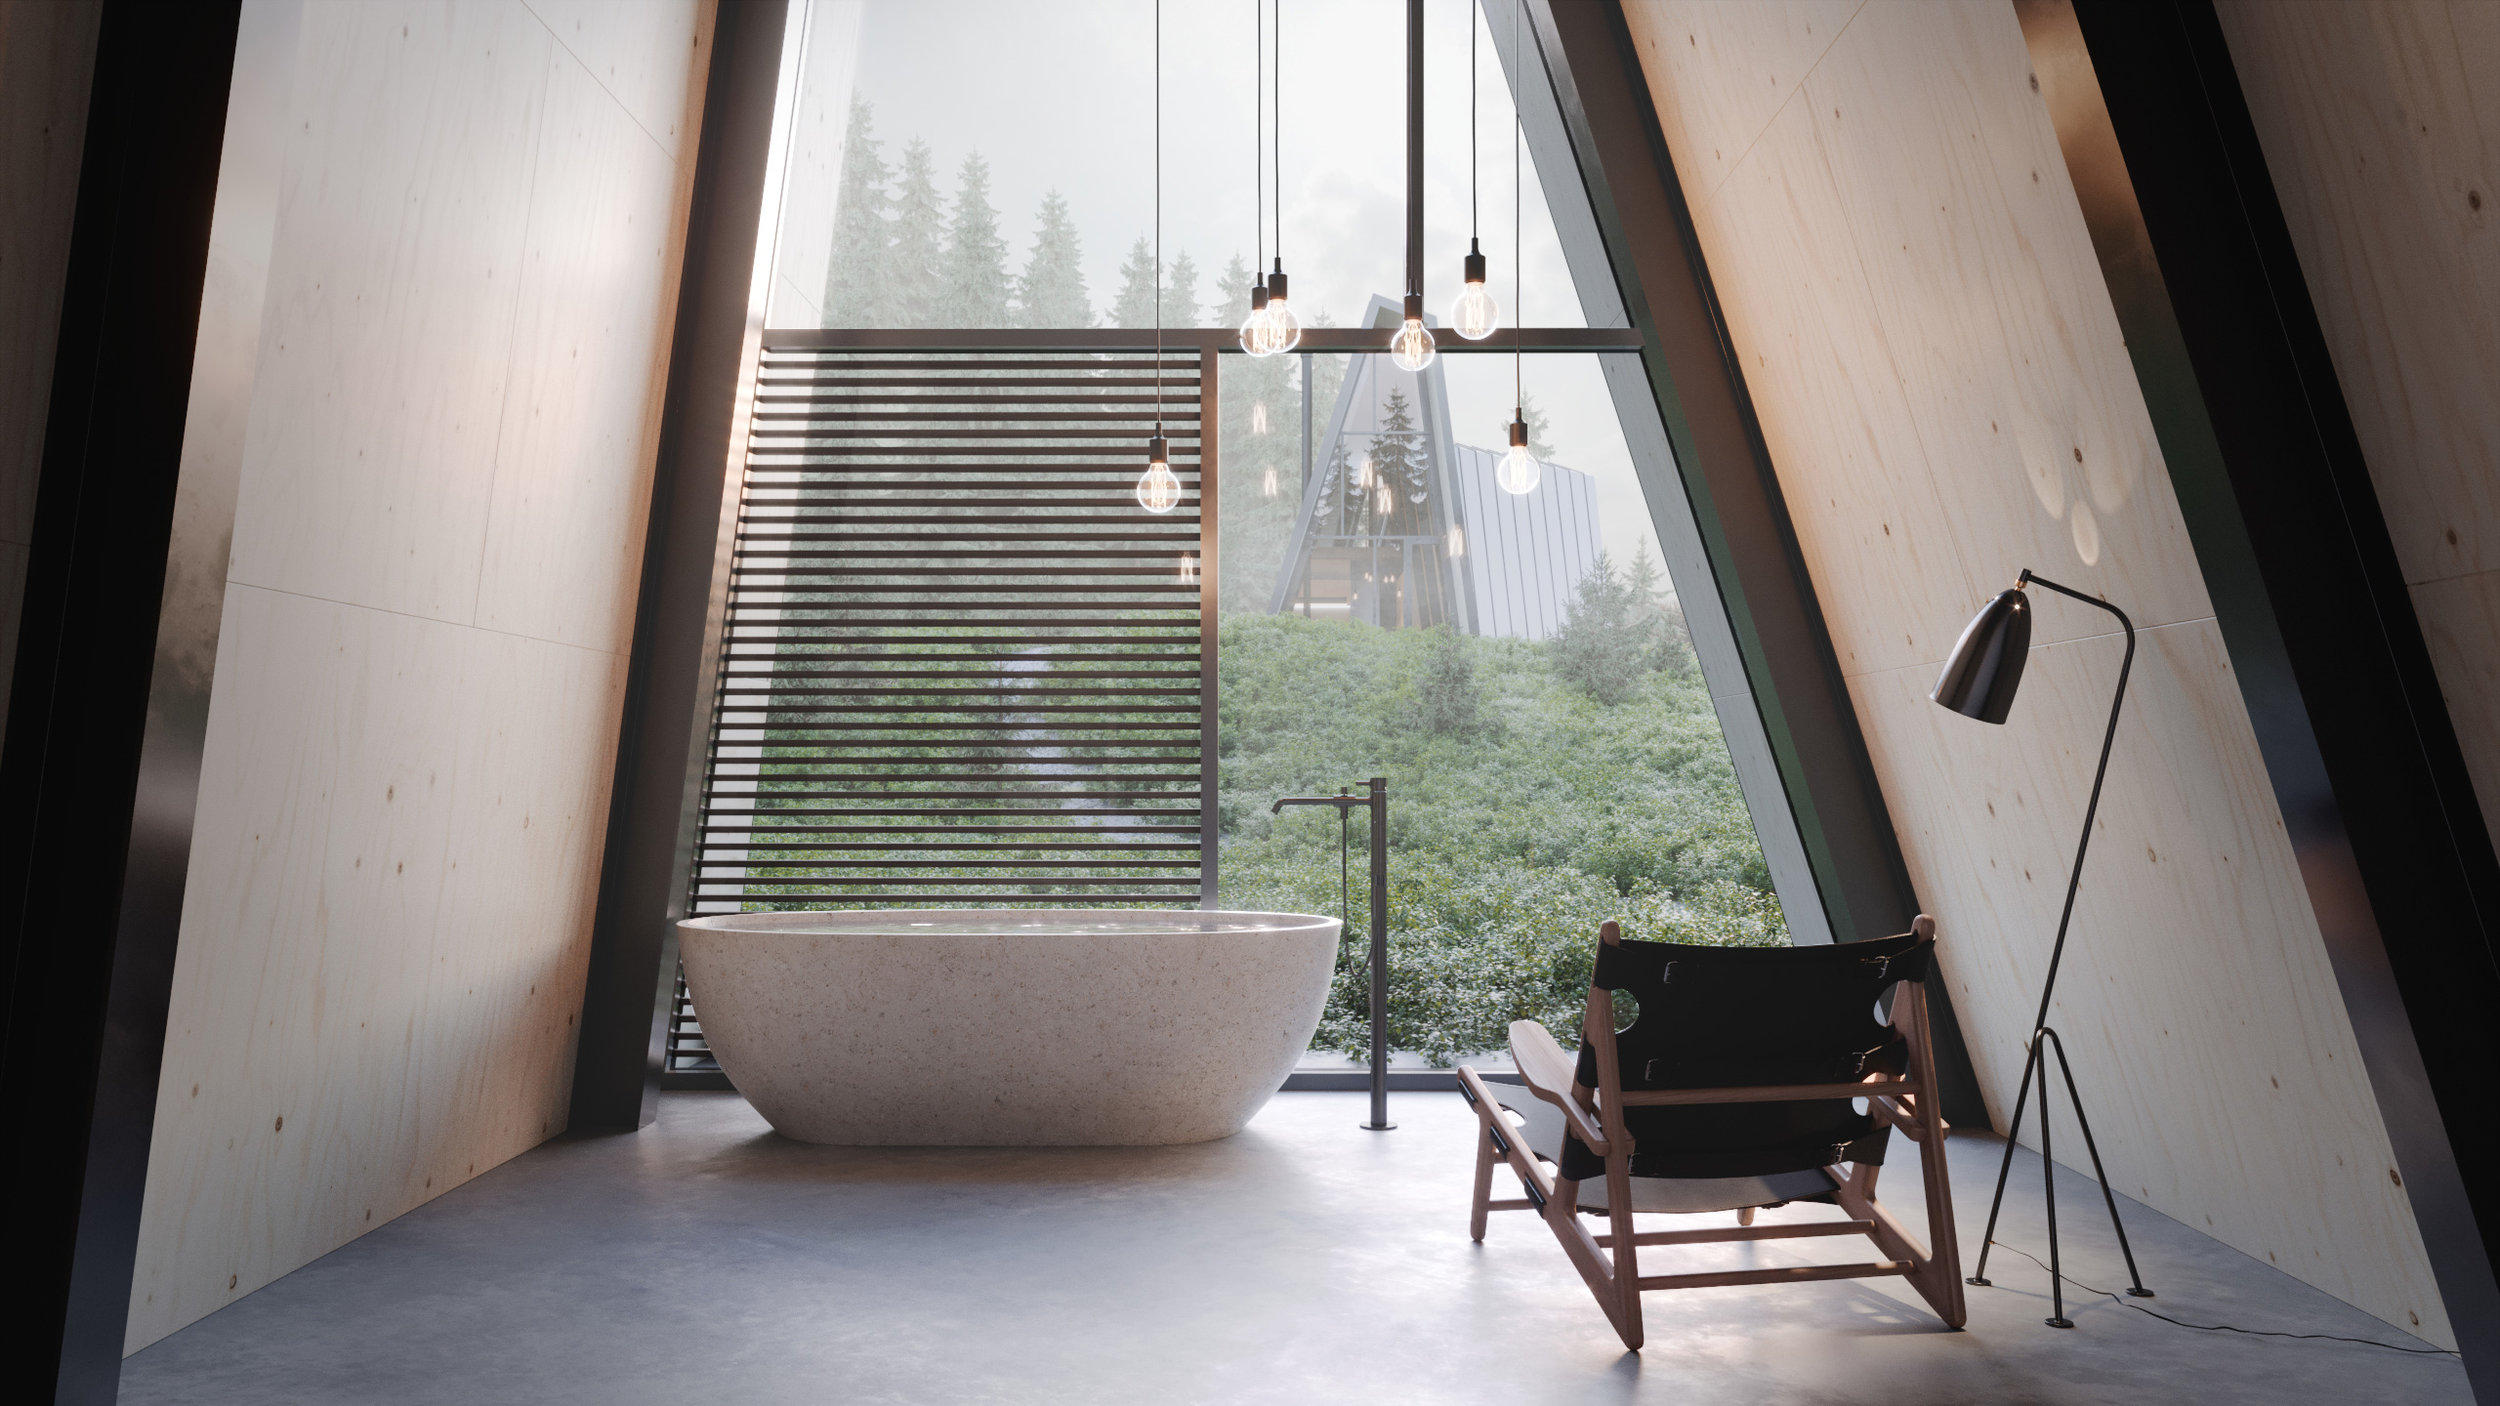 architectural-visualization-attic-cottages-yurii-suhov-04.jpg